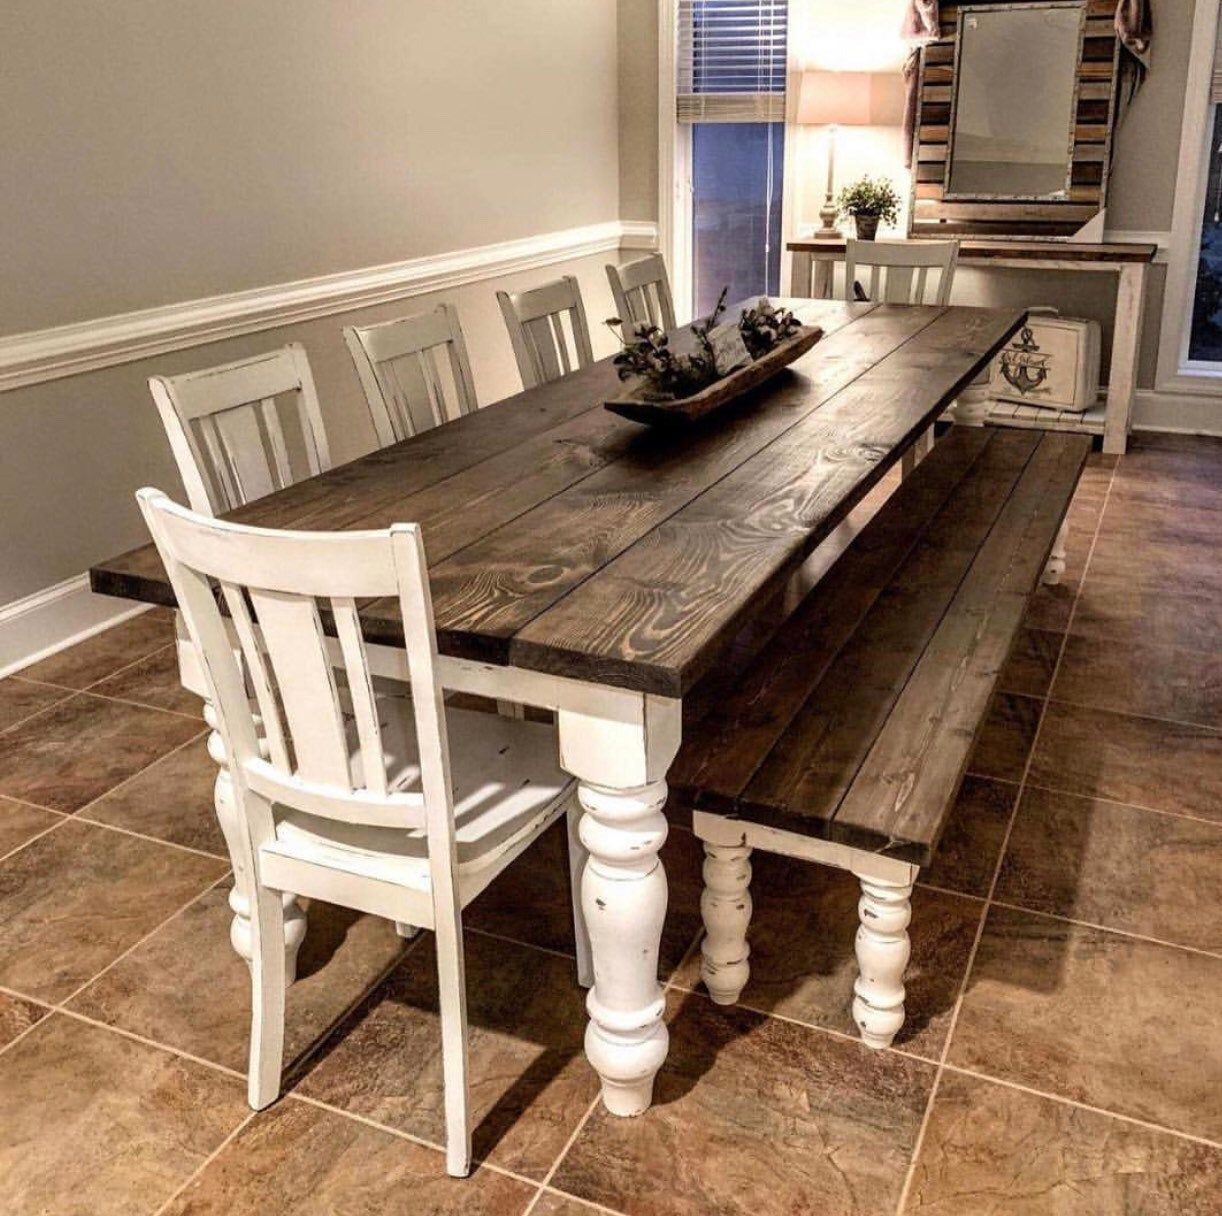 Chunky maple unfinished farmhouse dining table legs set of